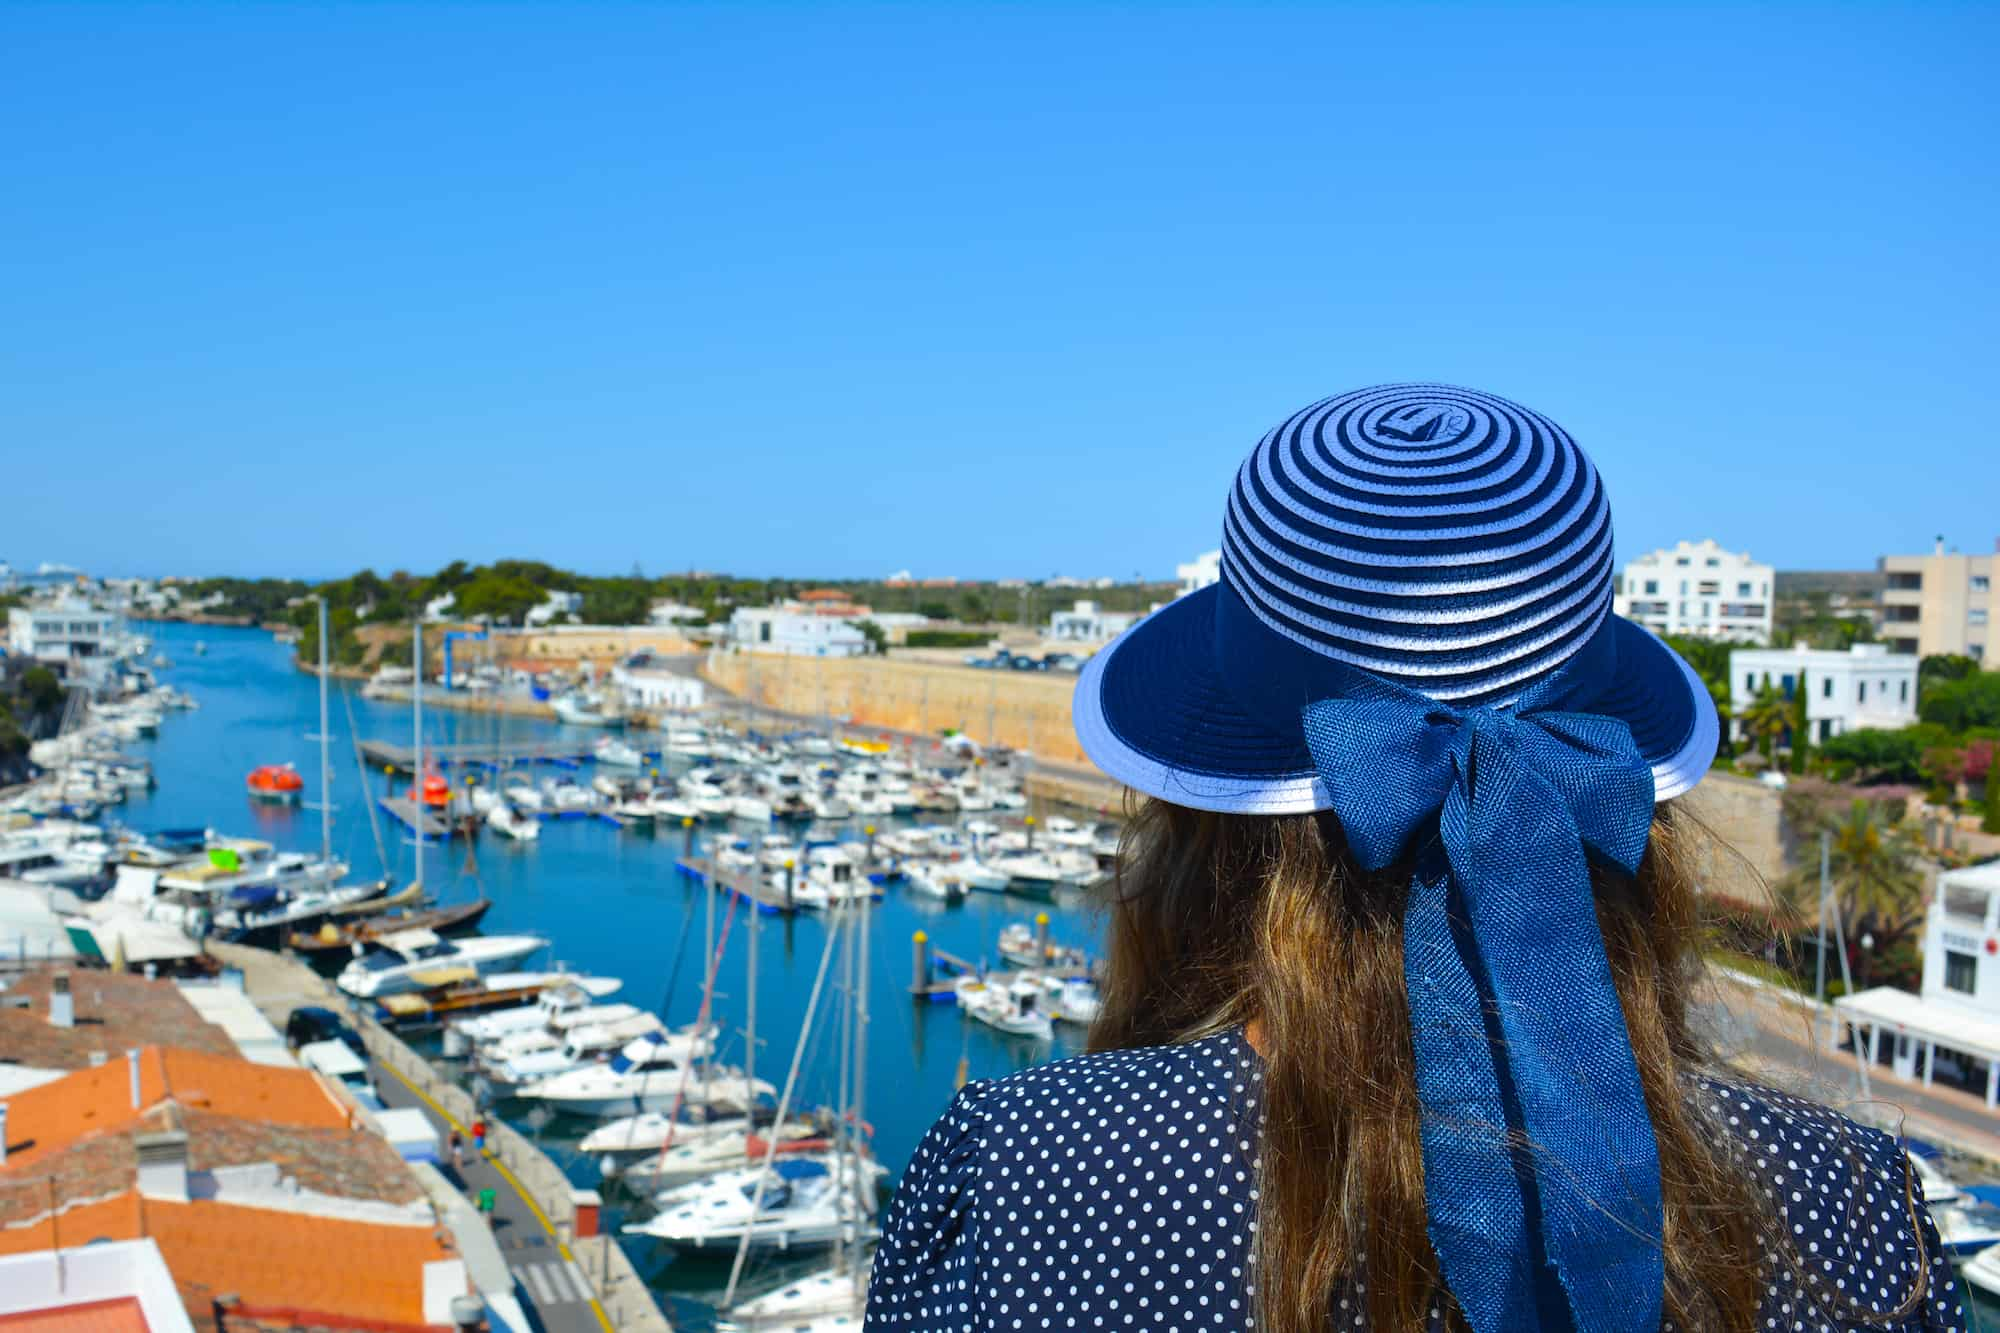 What to do in Menorca in one day: Travel Guide to Ciutadella and the Beaches